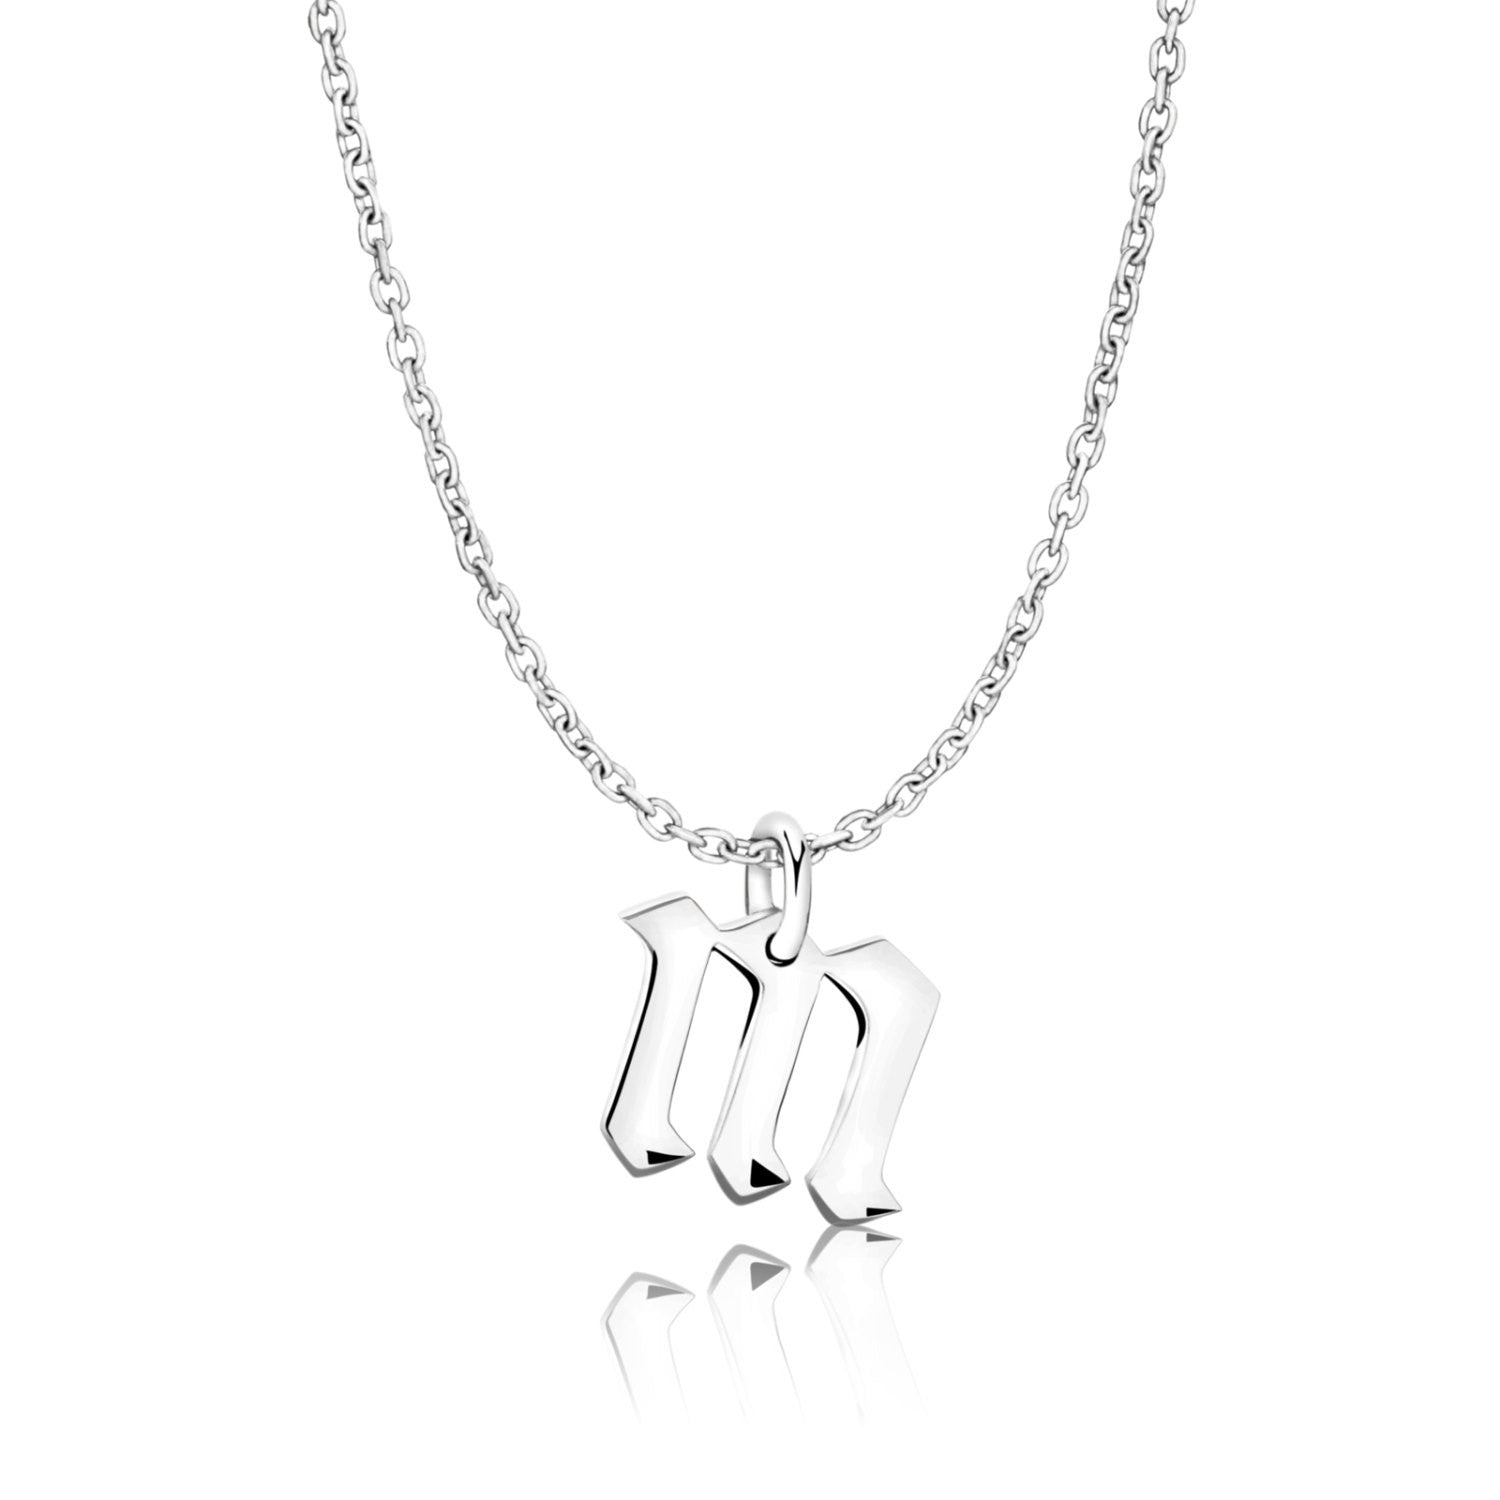 Gothic Initial M Necklace 925 sterling silver